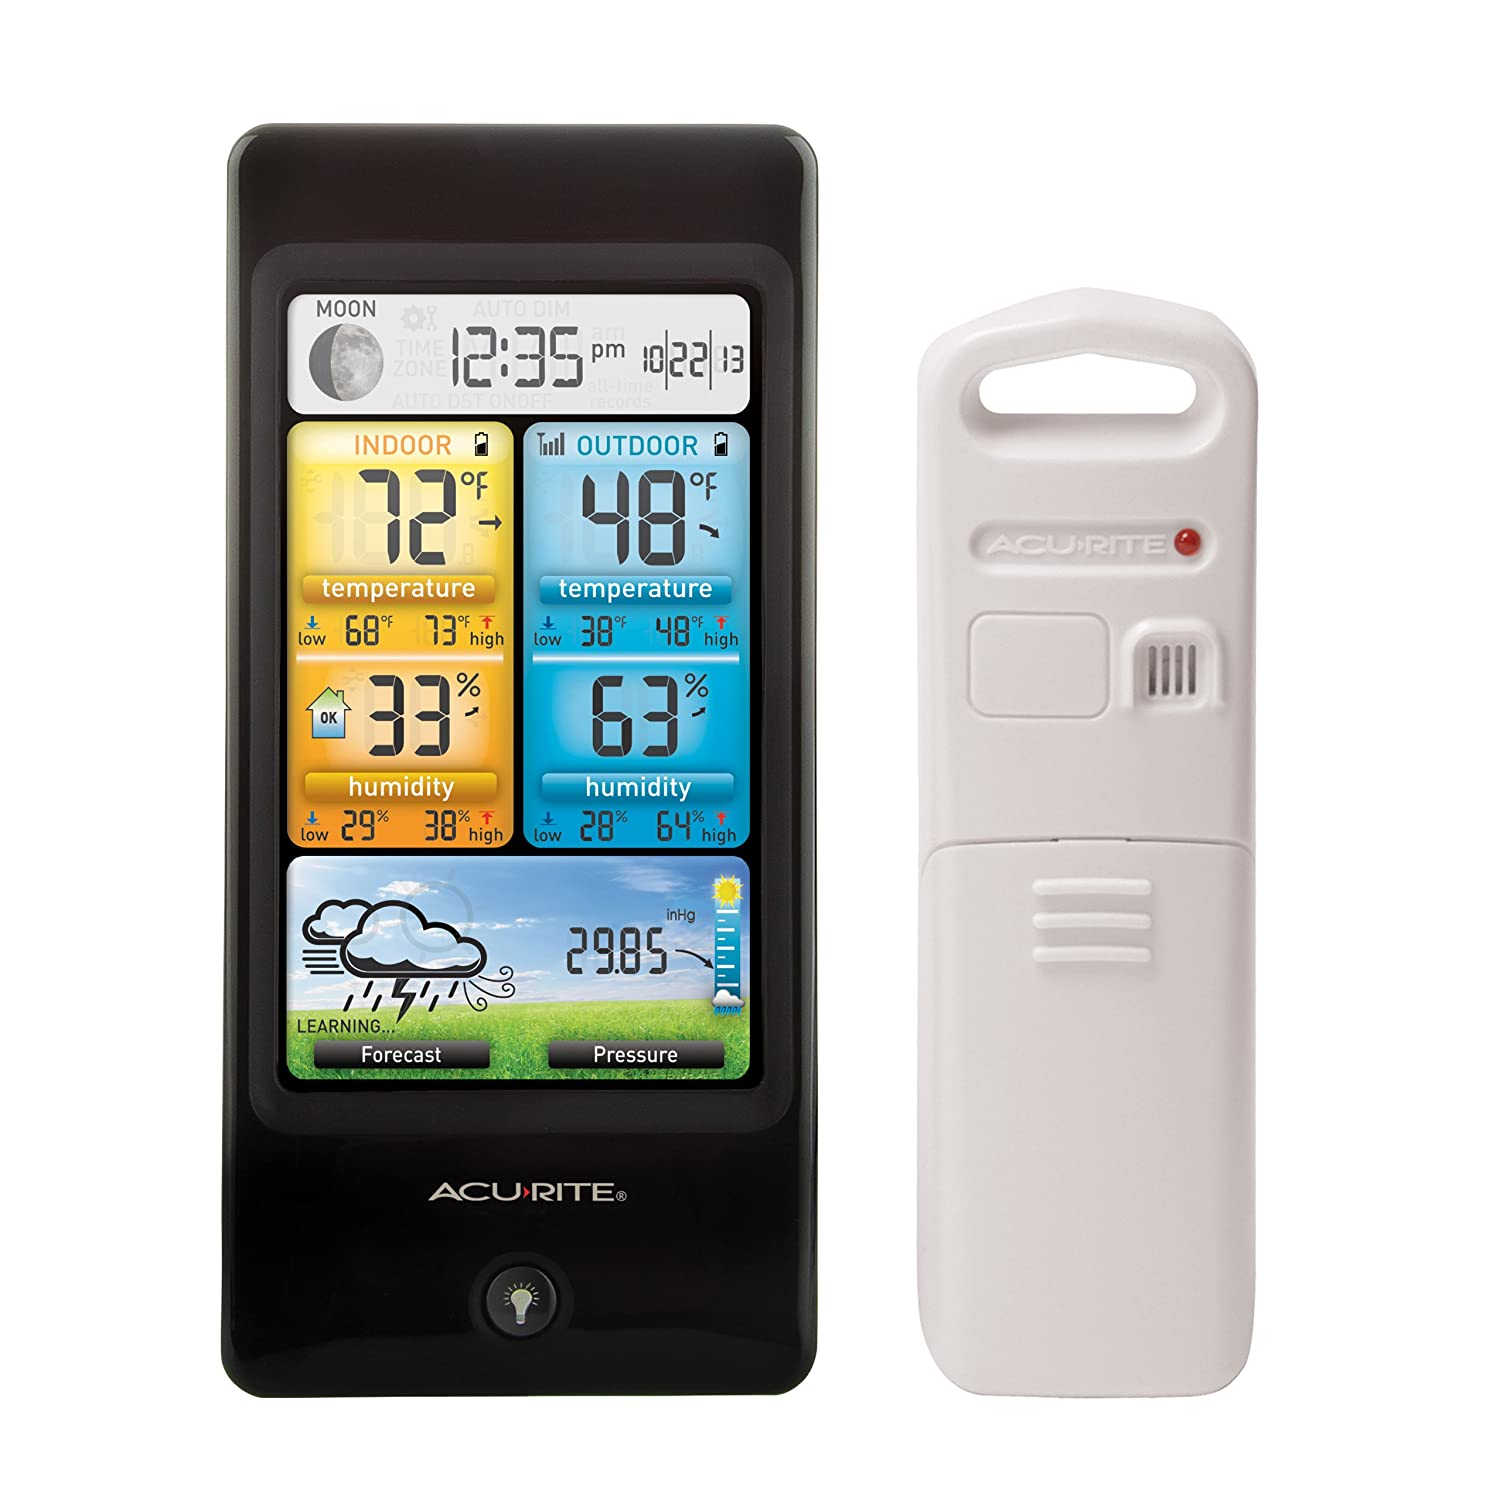 AcuRite 02016 Color Weather Station with Forecast/Temperature/Humidity